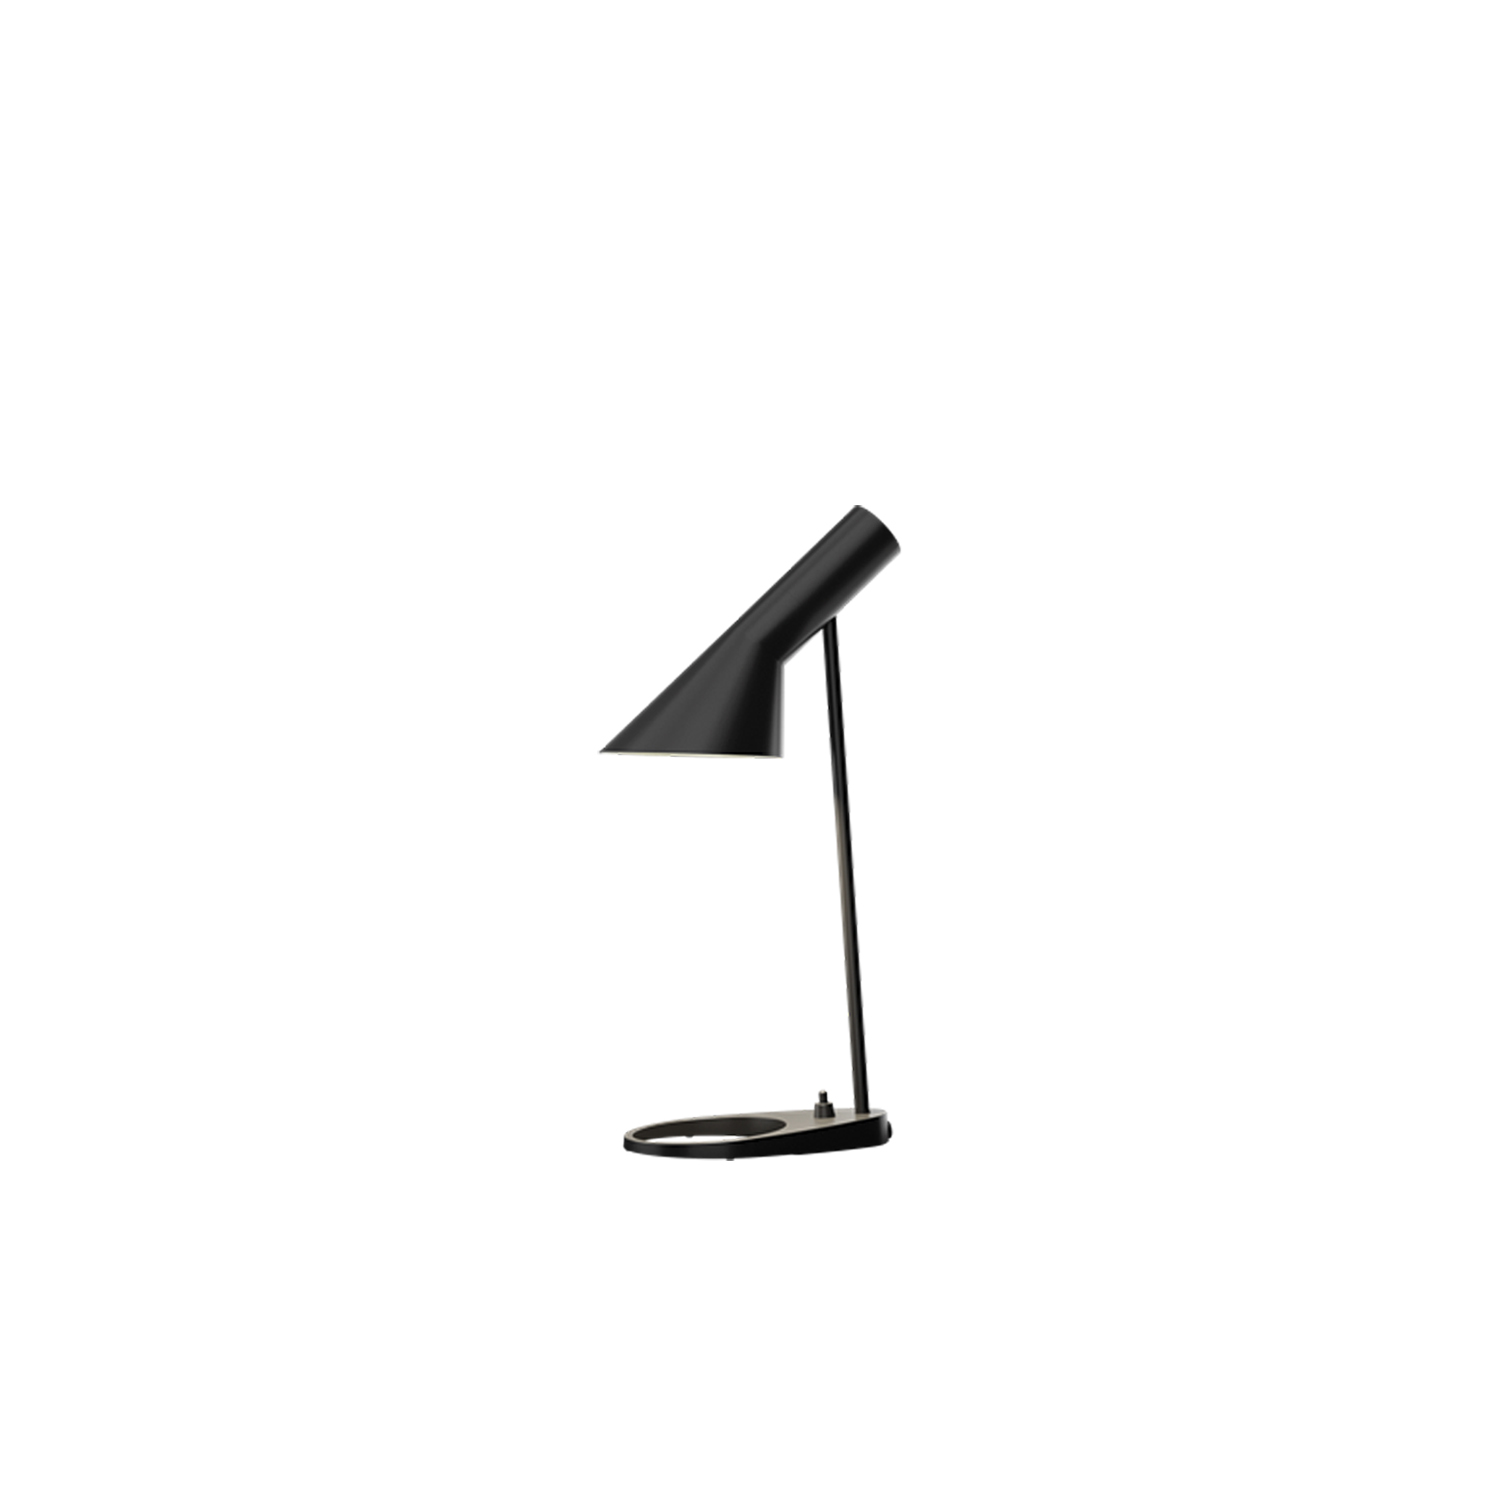 AJ Table Mini Lamp - The fixture emits downward directed light.‎ The angle of the shade can be adjusted to optimize light distribution.‎ The shade is painted white on the inside to ensure a soft comfortable light.‎